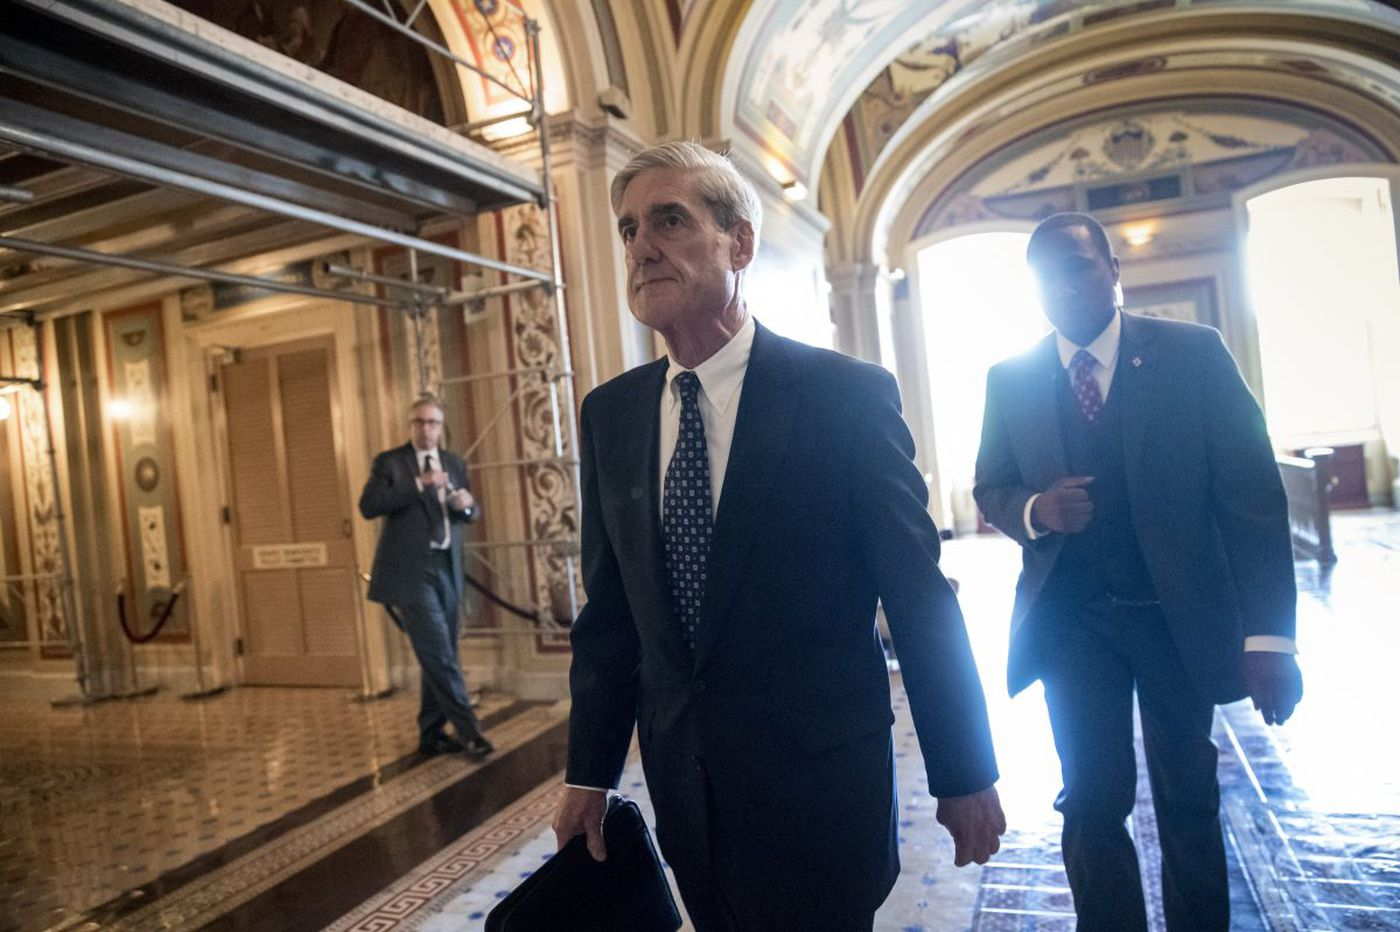 Trump looks ready to fire Mueller. There's no guarantee this ends like Watergate | Will Bunch